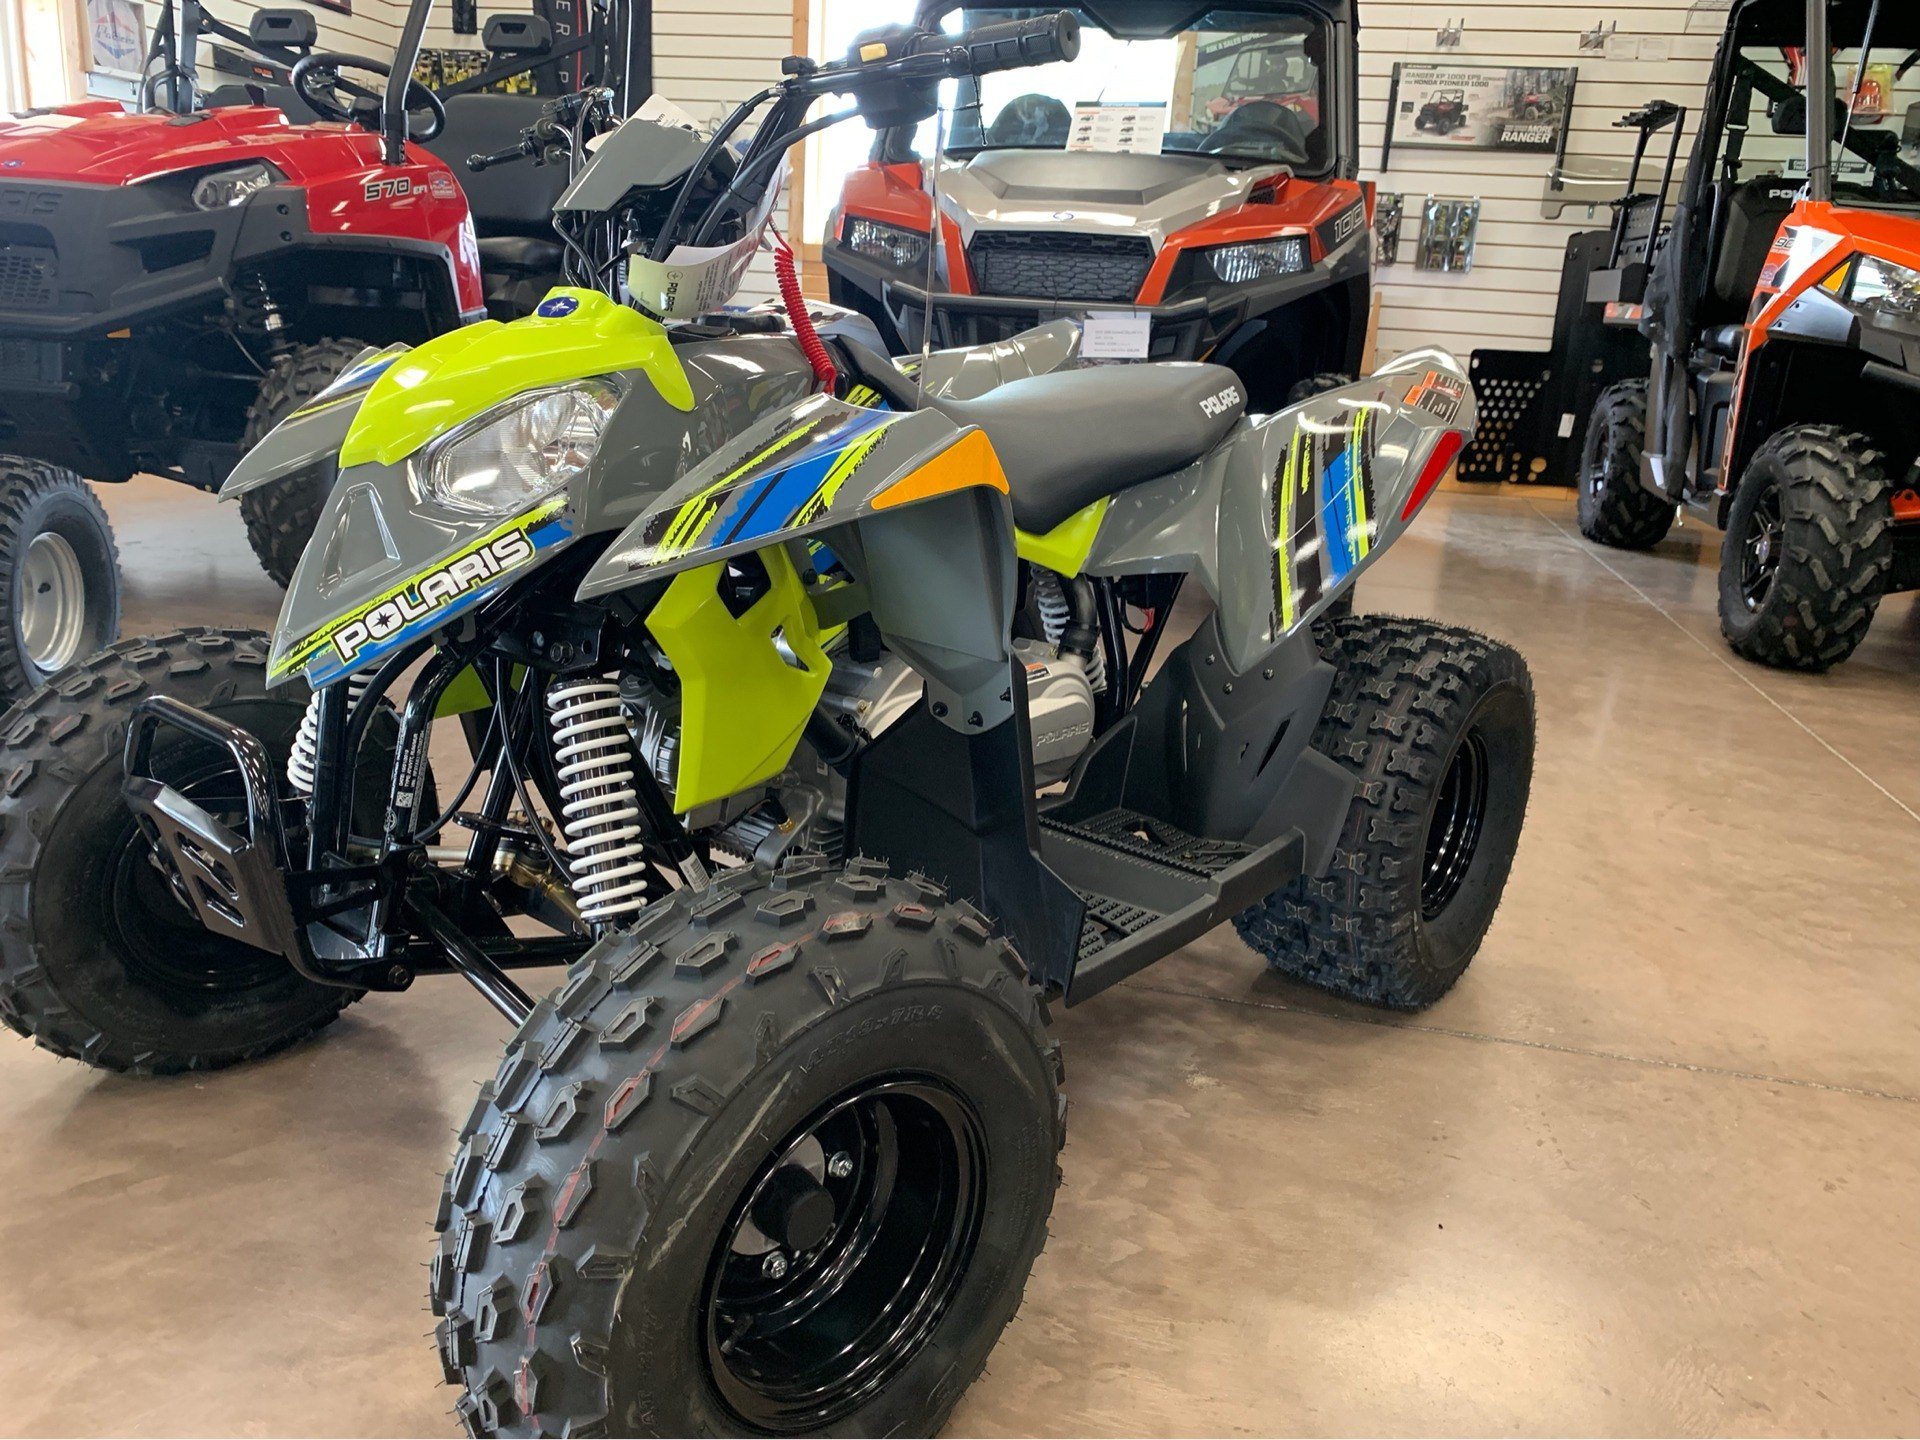 2019 Polaris Outlaw 110 in Algona, Iowa - Photo 1